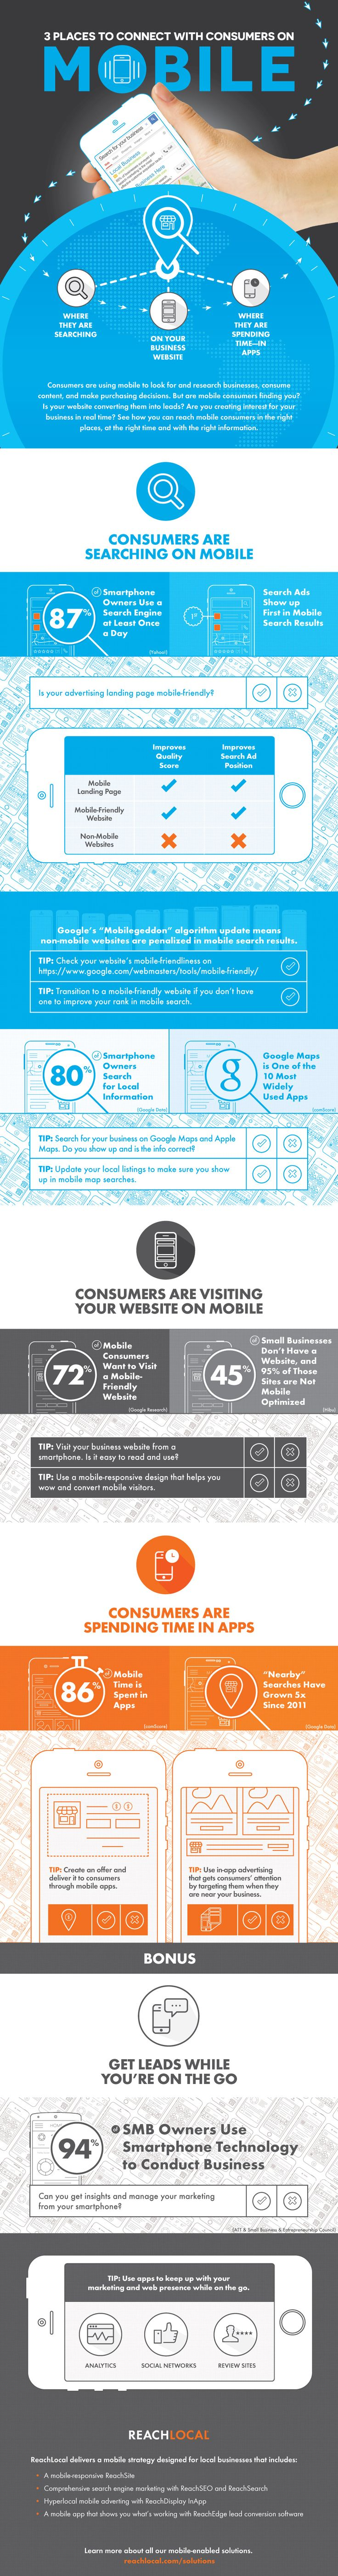 Infographic: how to connect with consumers on mobile